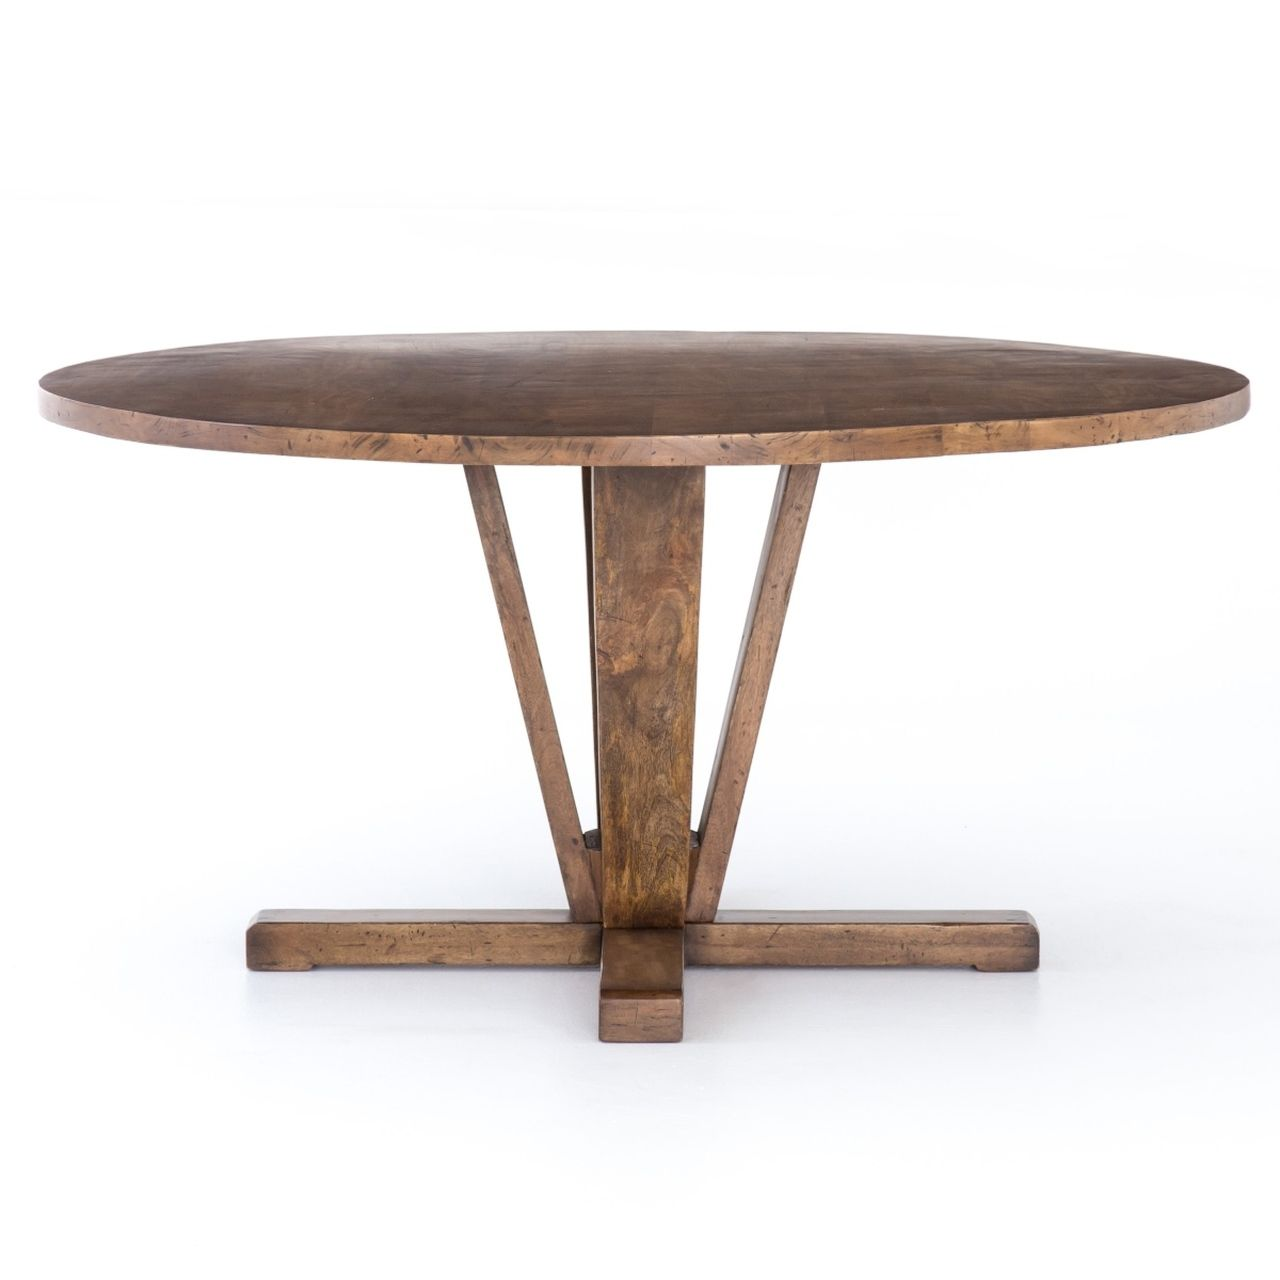 Cobain Reclaimed Wood Round Dining Table 60 Round Wood Dining Table Reclaimed Wood Round Dining Table Farmhouse Round Dining Table [ 1280 x 1280 Pixel ]